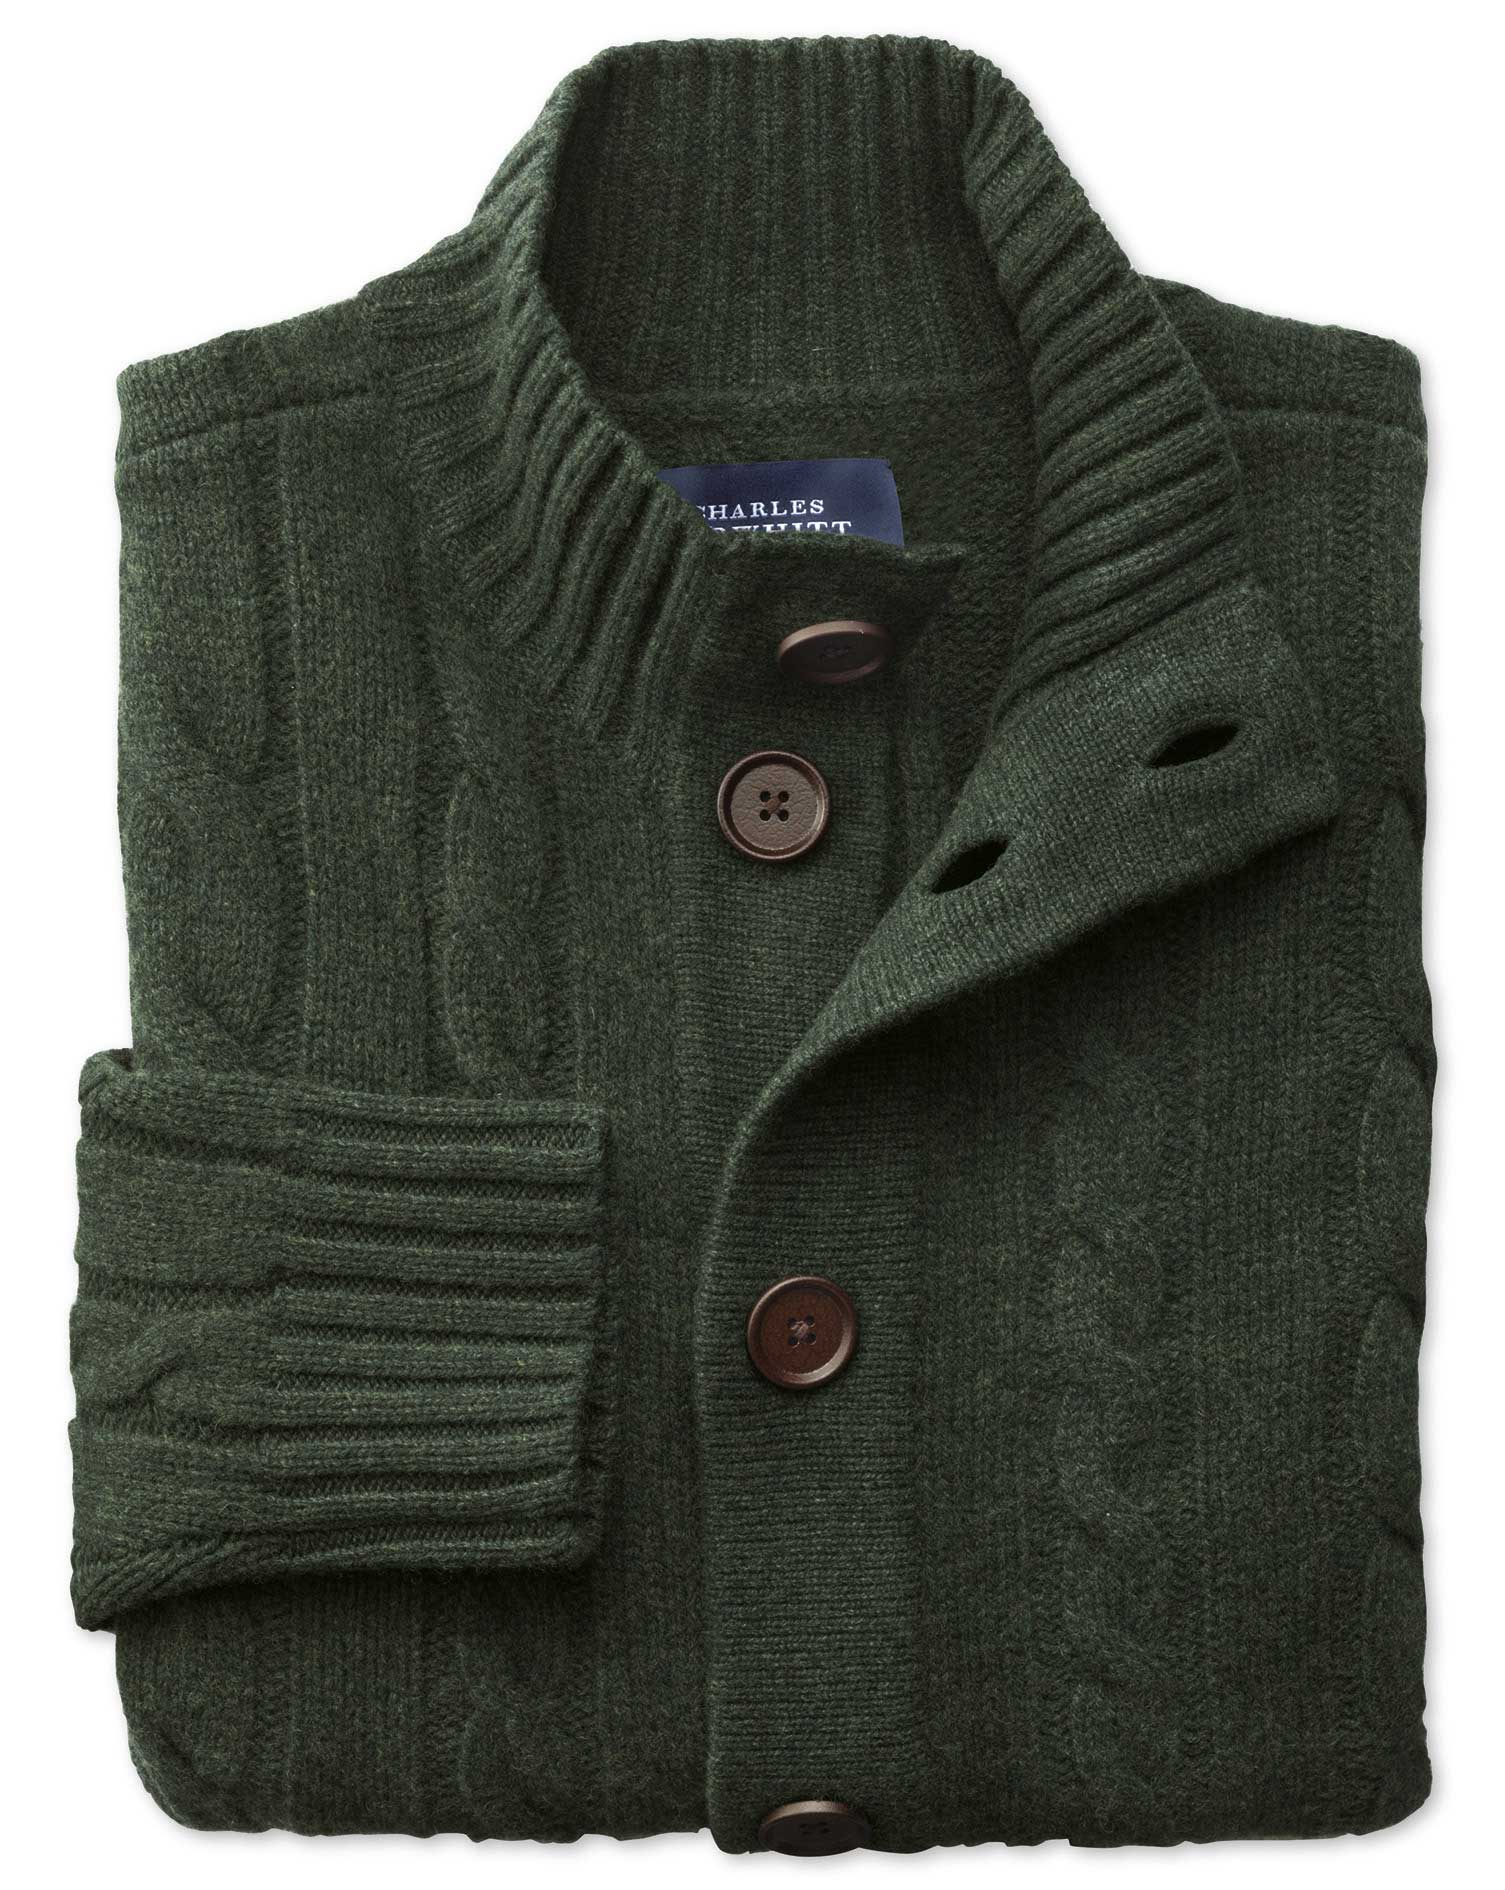 Dark Green Lambswool Cable Cardigan Size XL by Charles Tyrwhitt